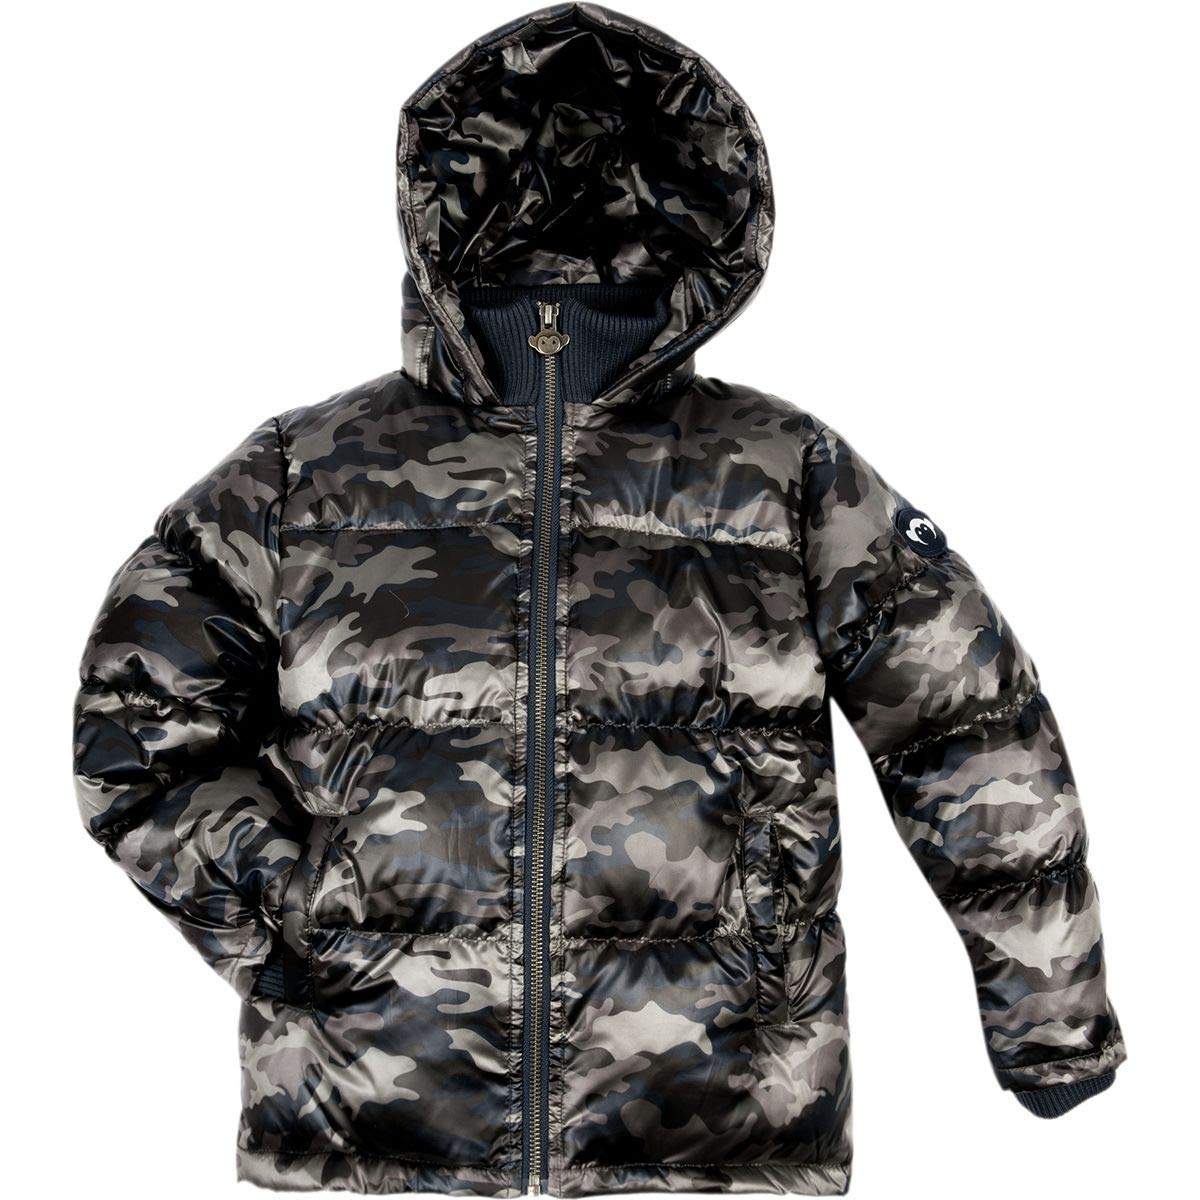 Appaman Kids Baby Boy's Soft Base Camp Puffer Jacket with Front Pockets (Toddler/Little Kids/Big Kids) City Nights Camo 7